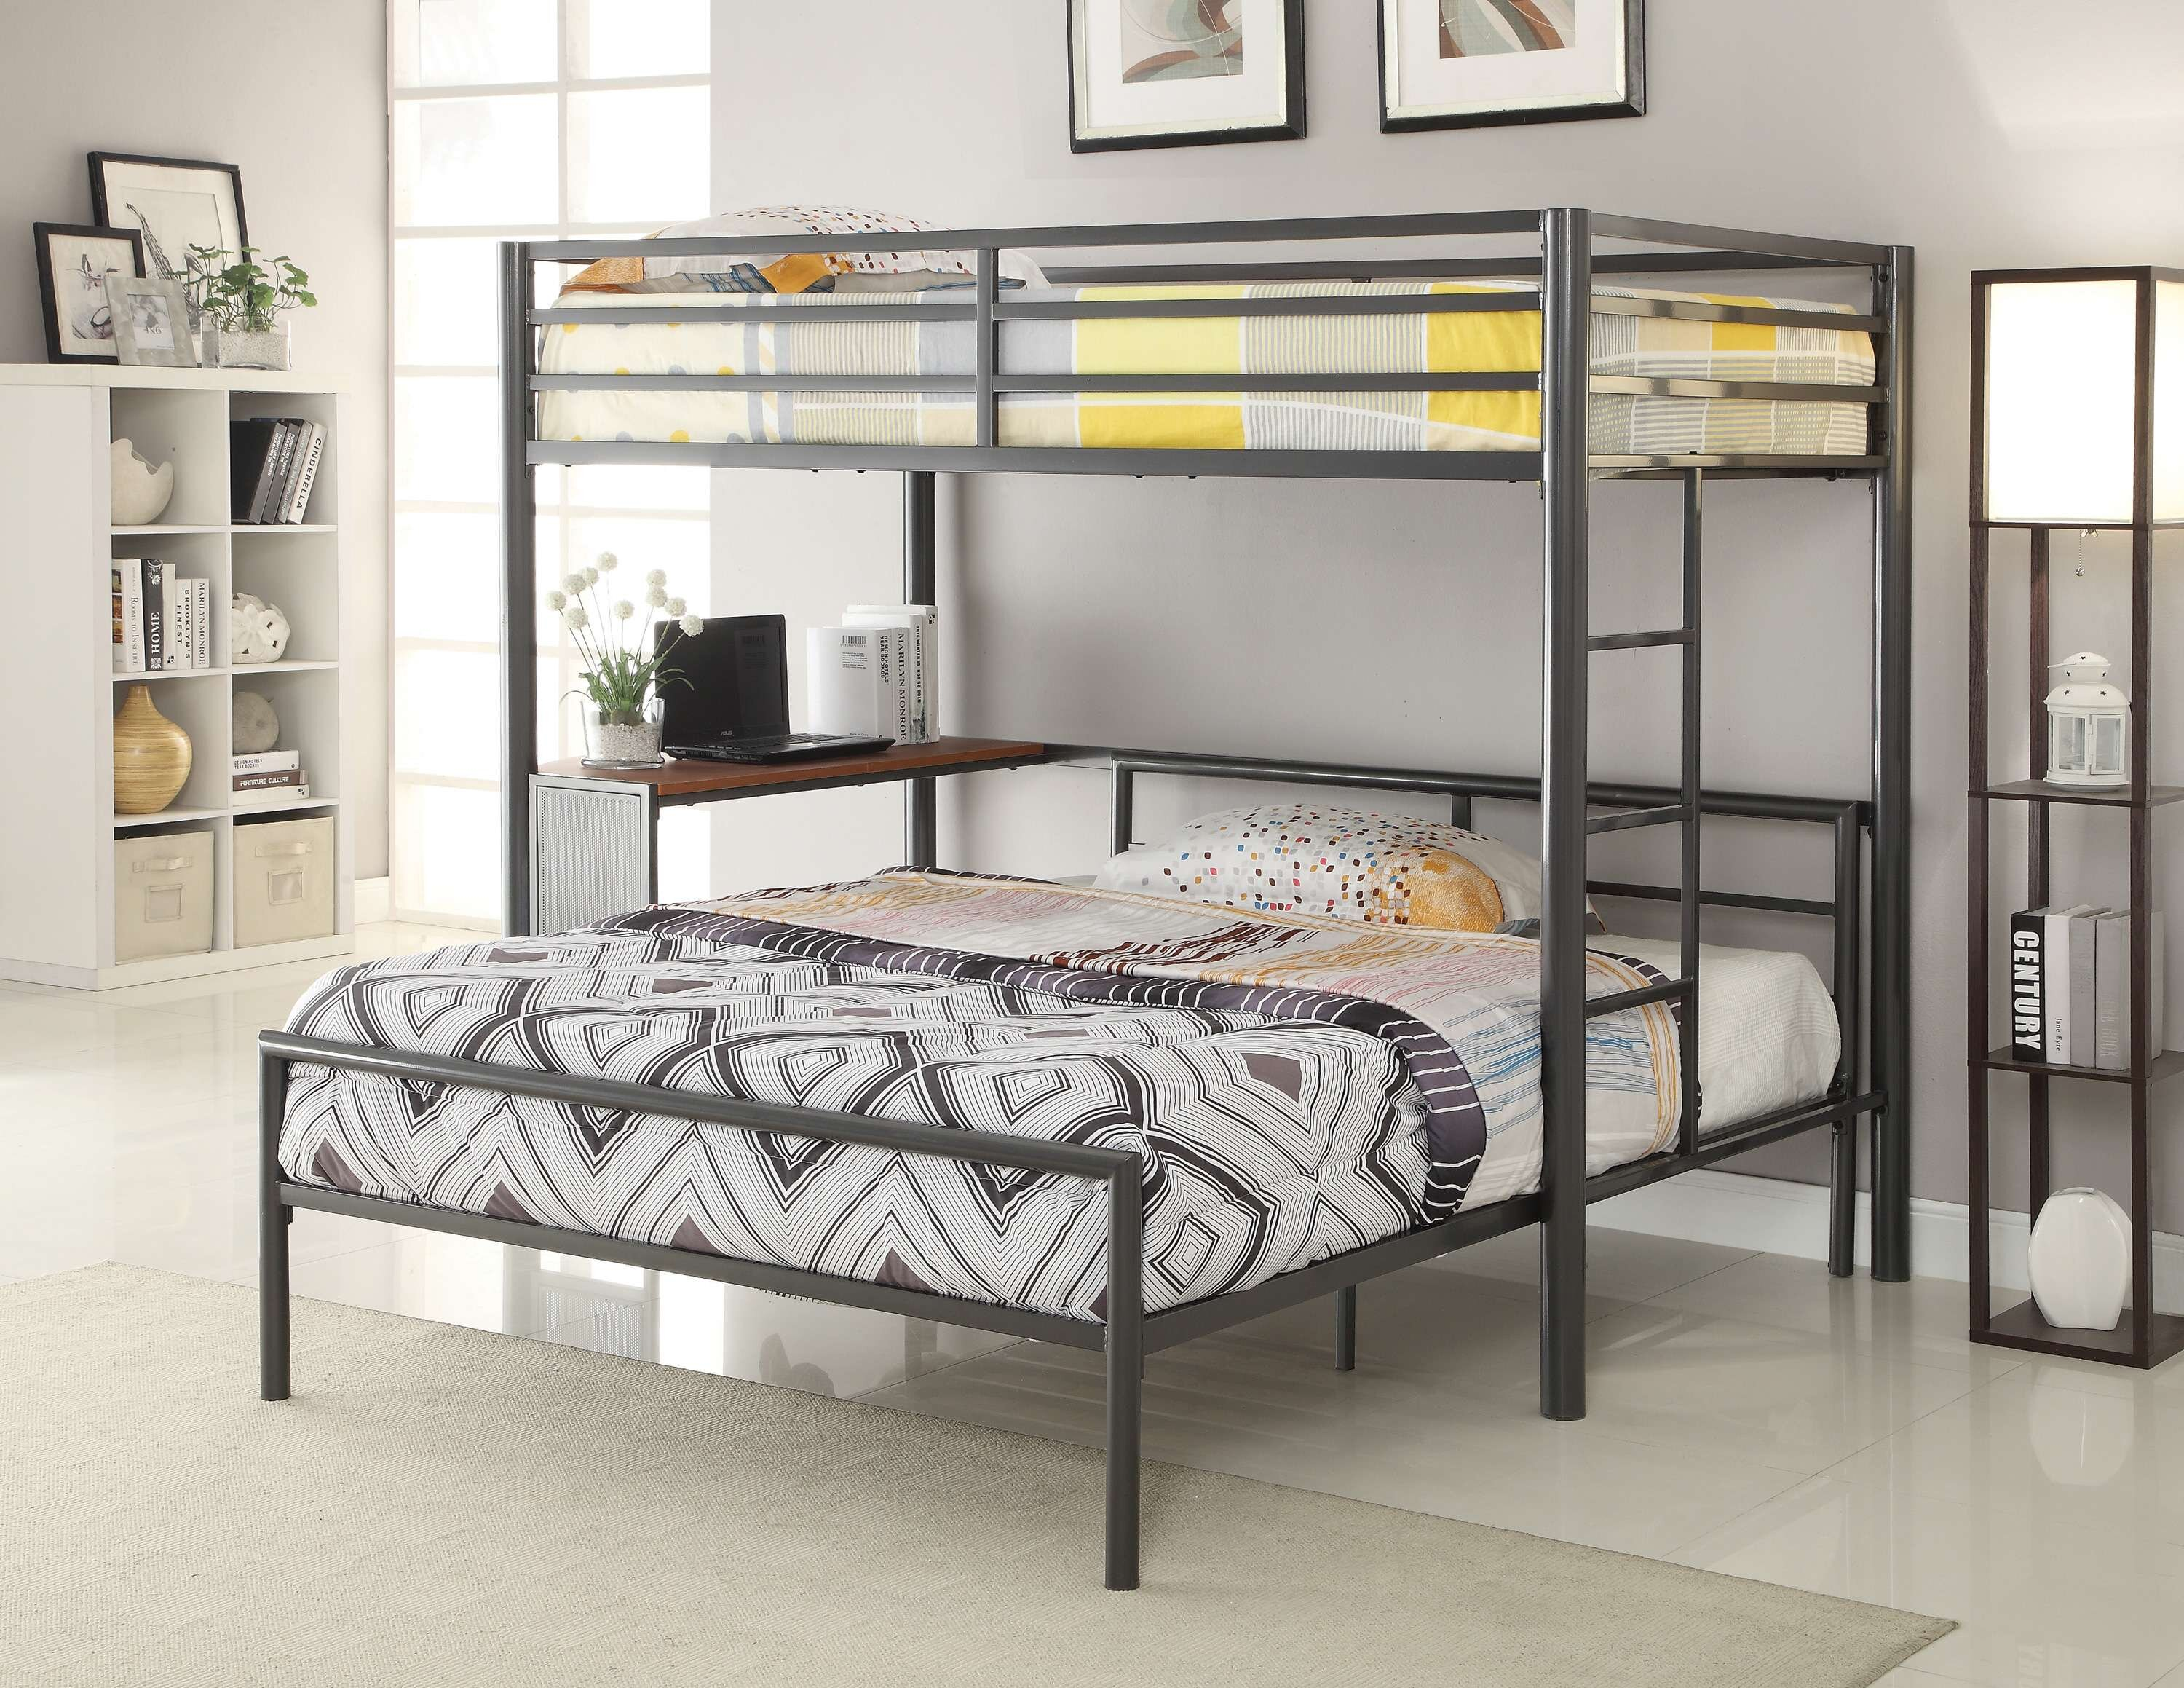 Image result for loft bed twin over full